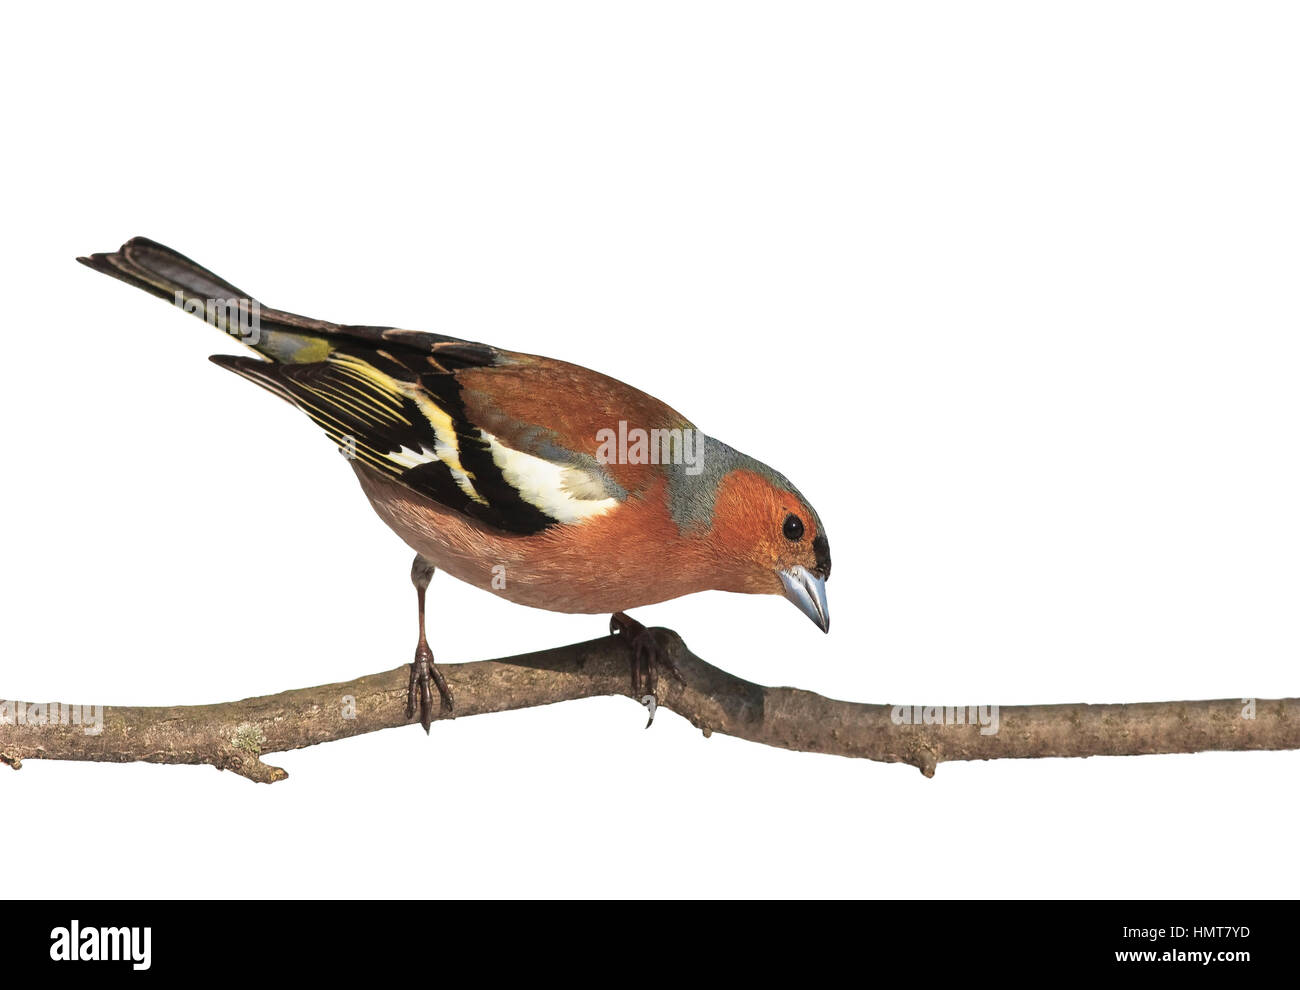 Bird Chaffinch sitting in the Park on a branch on white isolated background - Stock Image